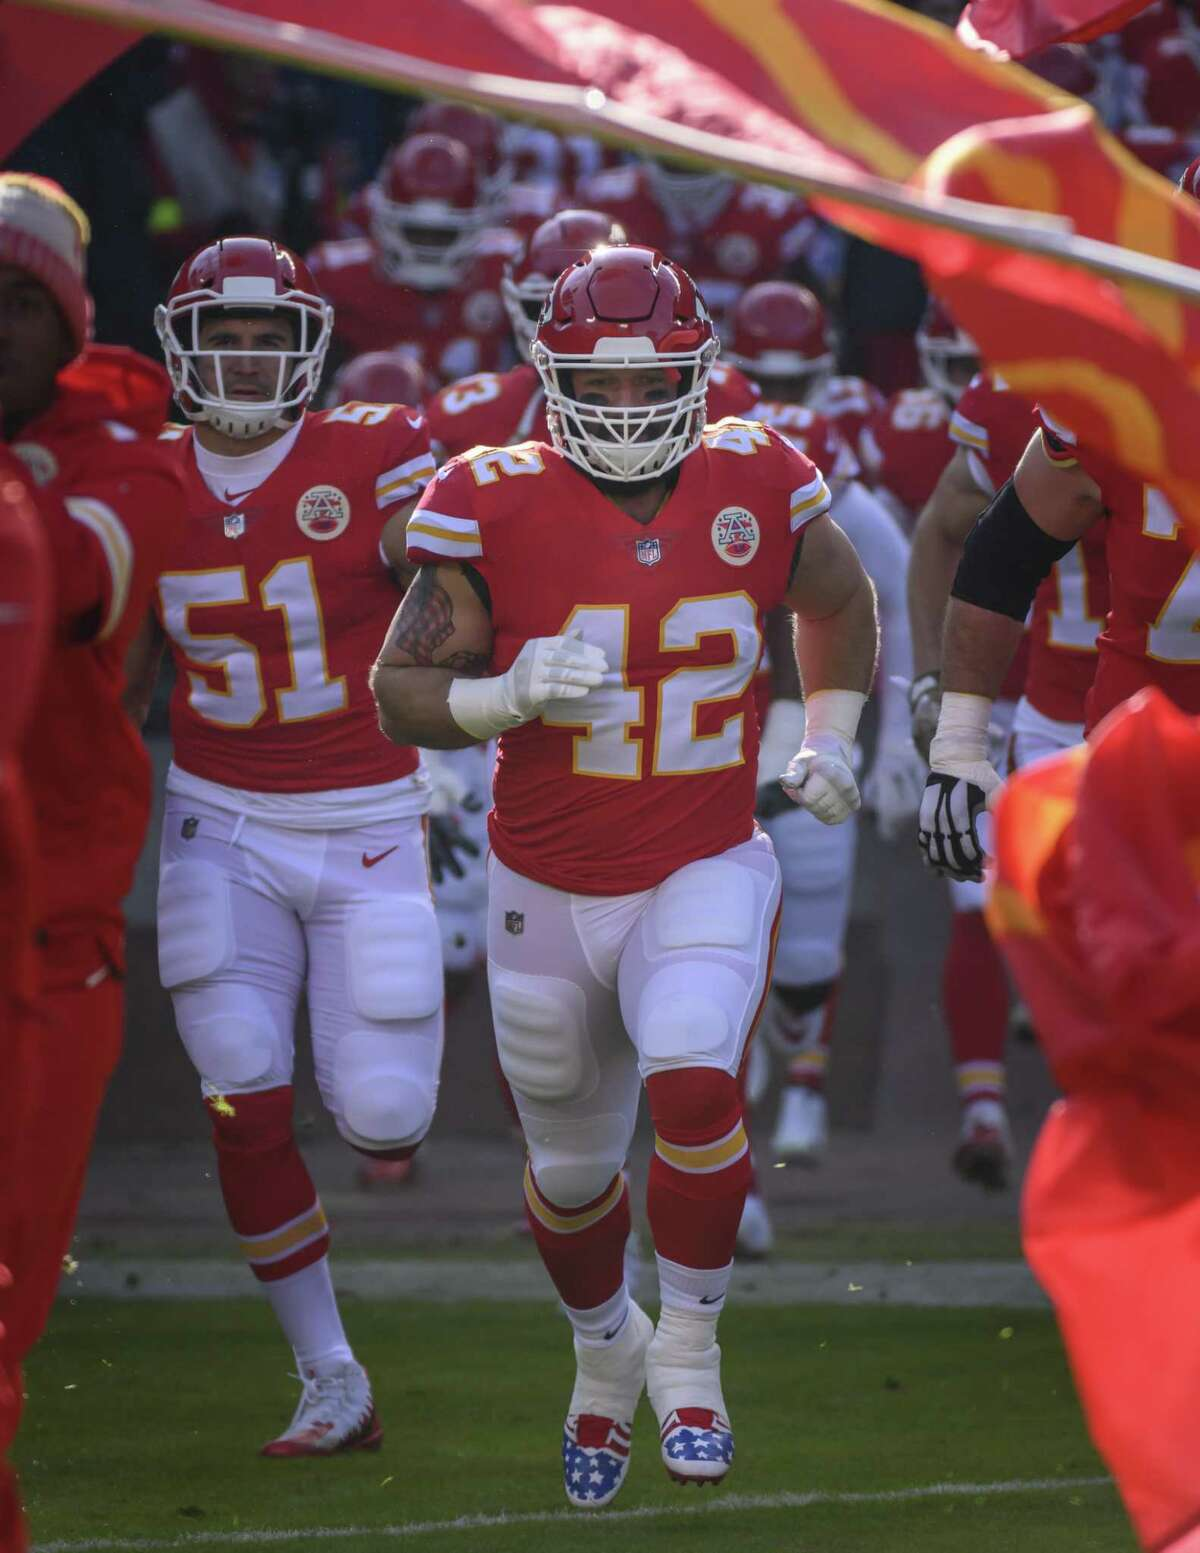 Anthony Sherman (42): Former UConn standout will be part of the Kansas City Chiefs offense on Sunday in Super Bowl LIV.